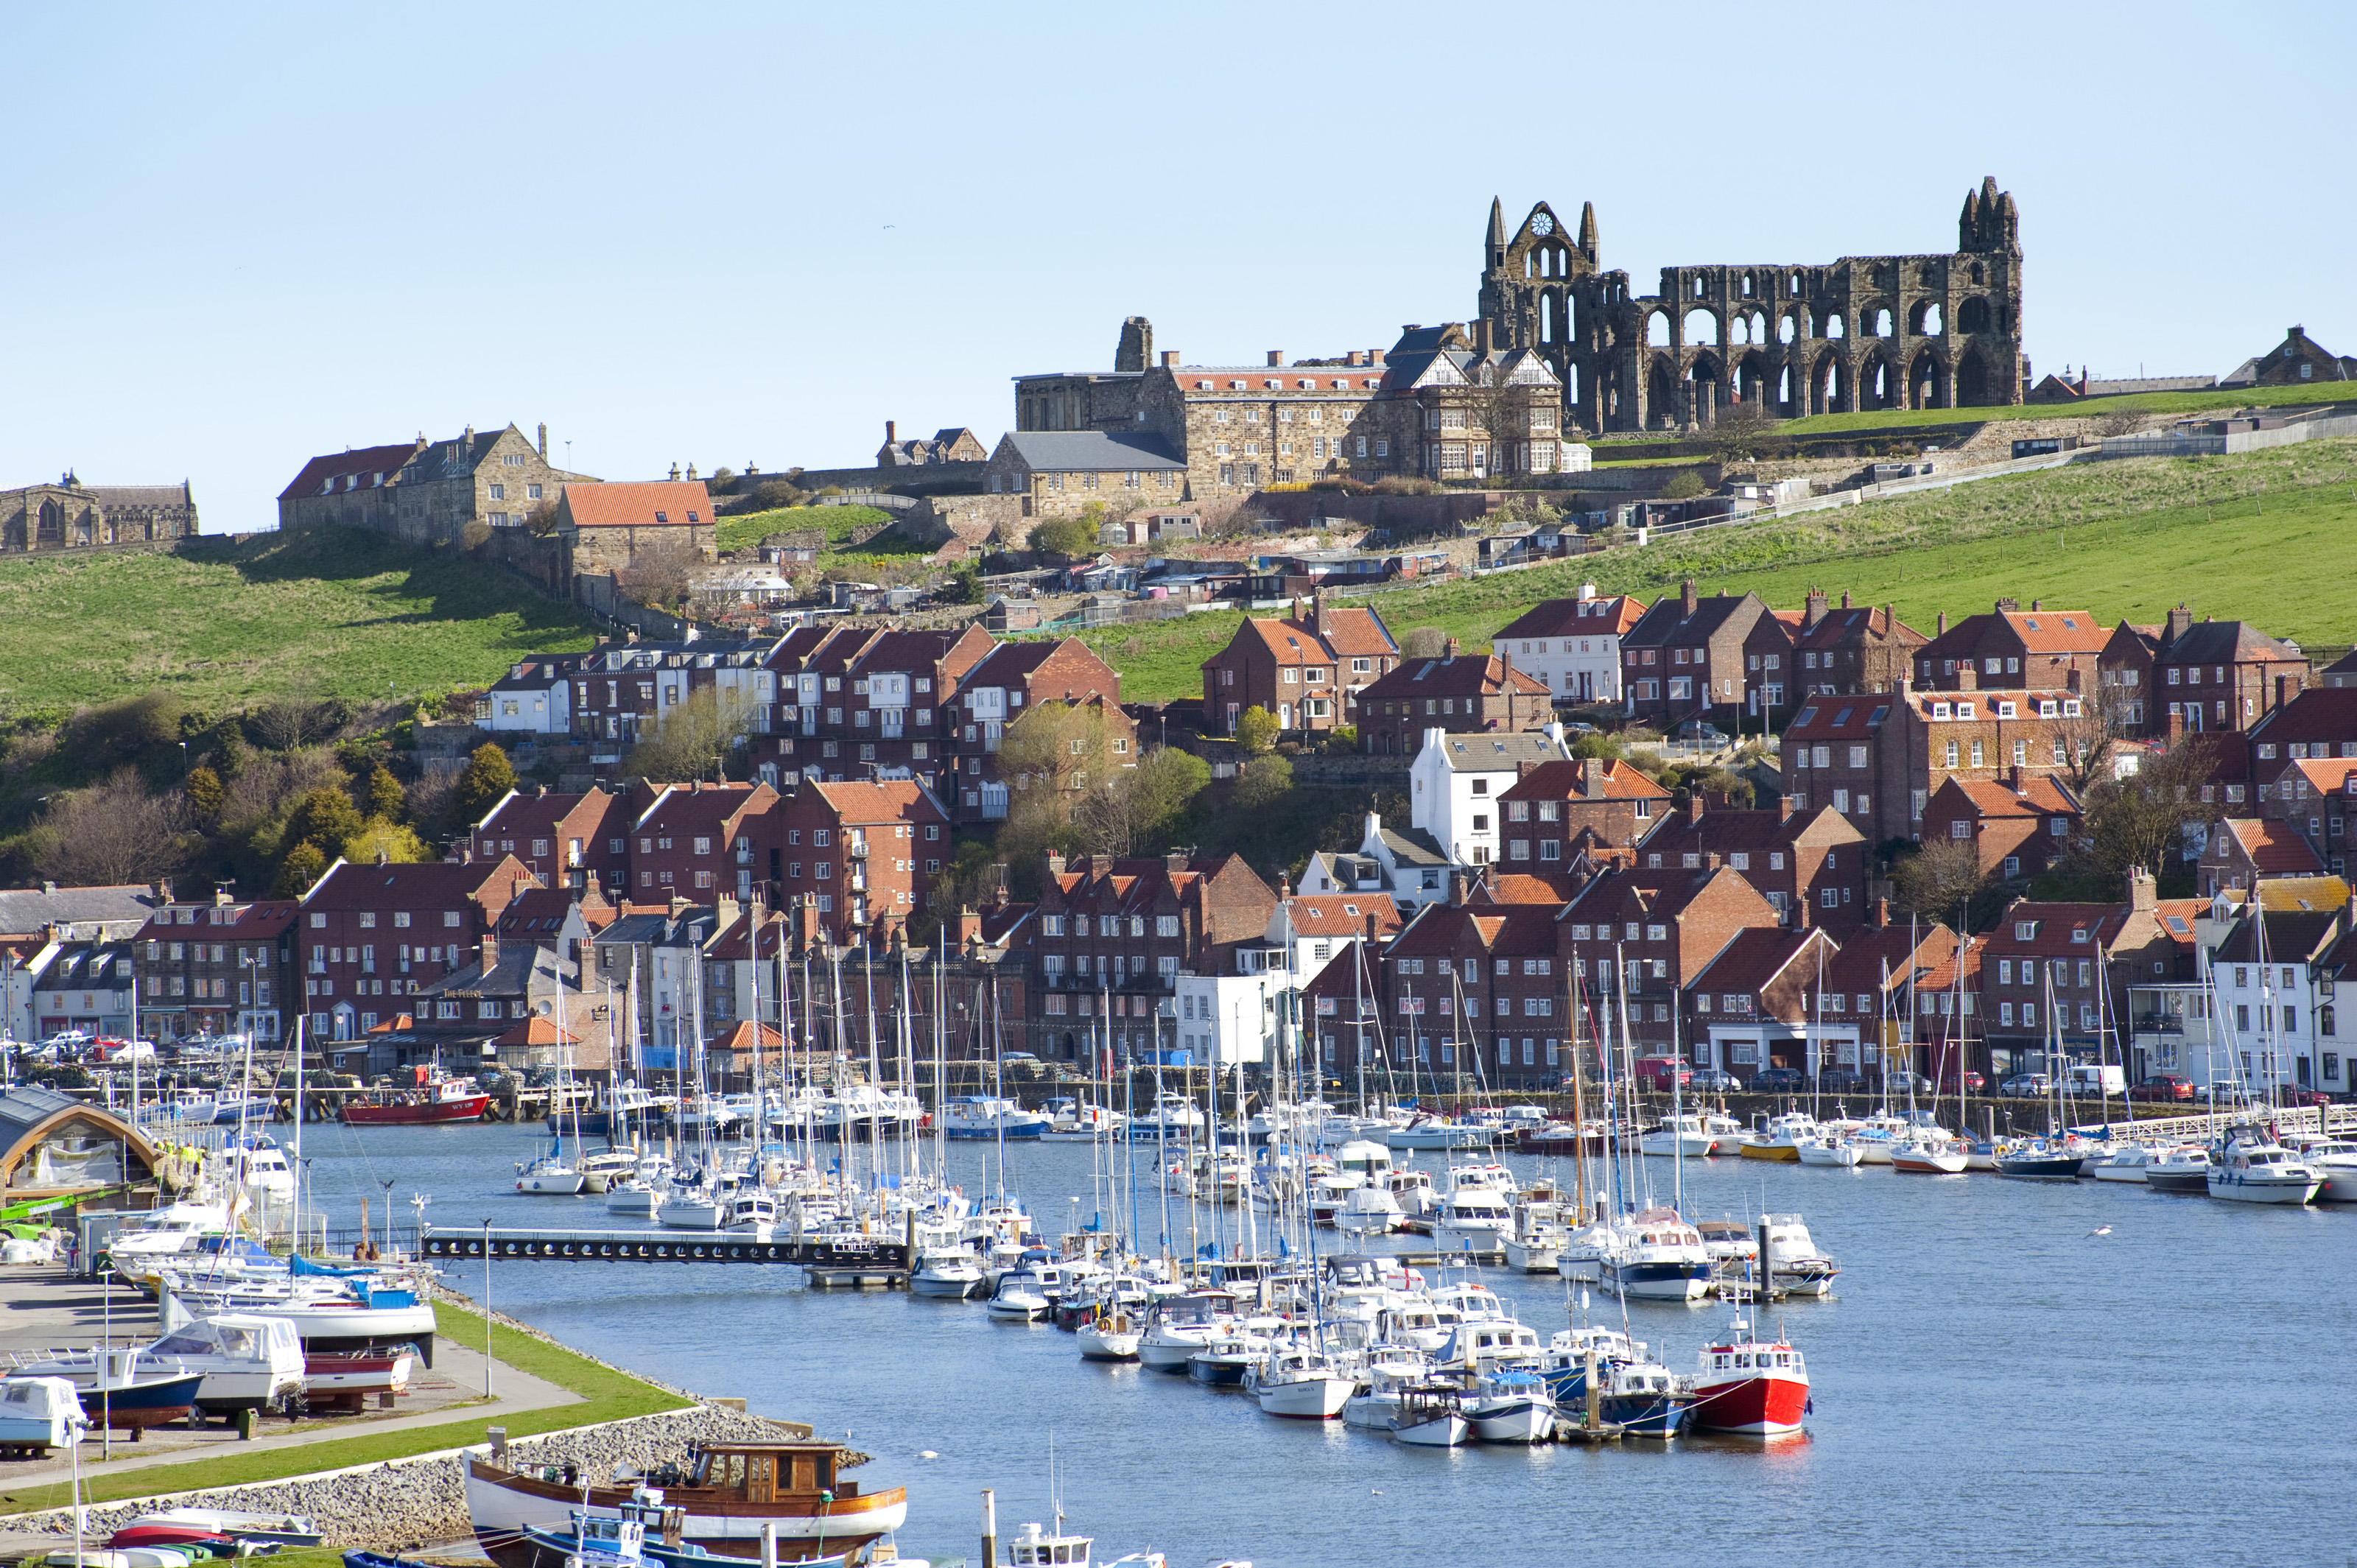 Whitby - 35 minutes